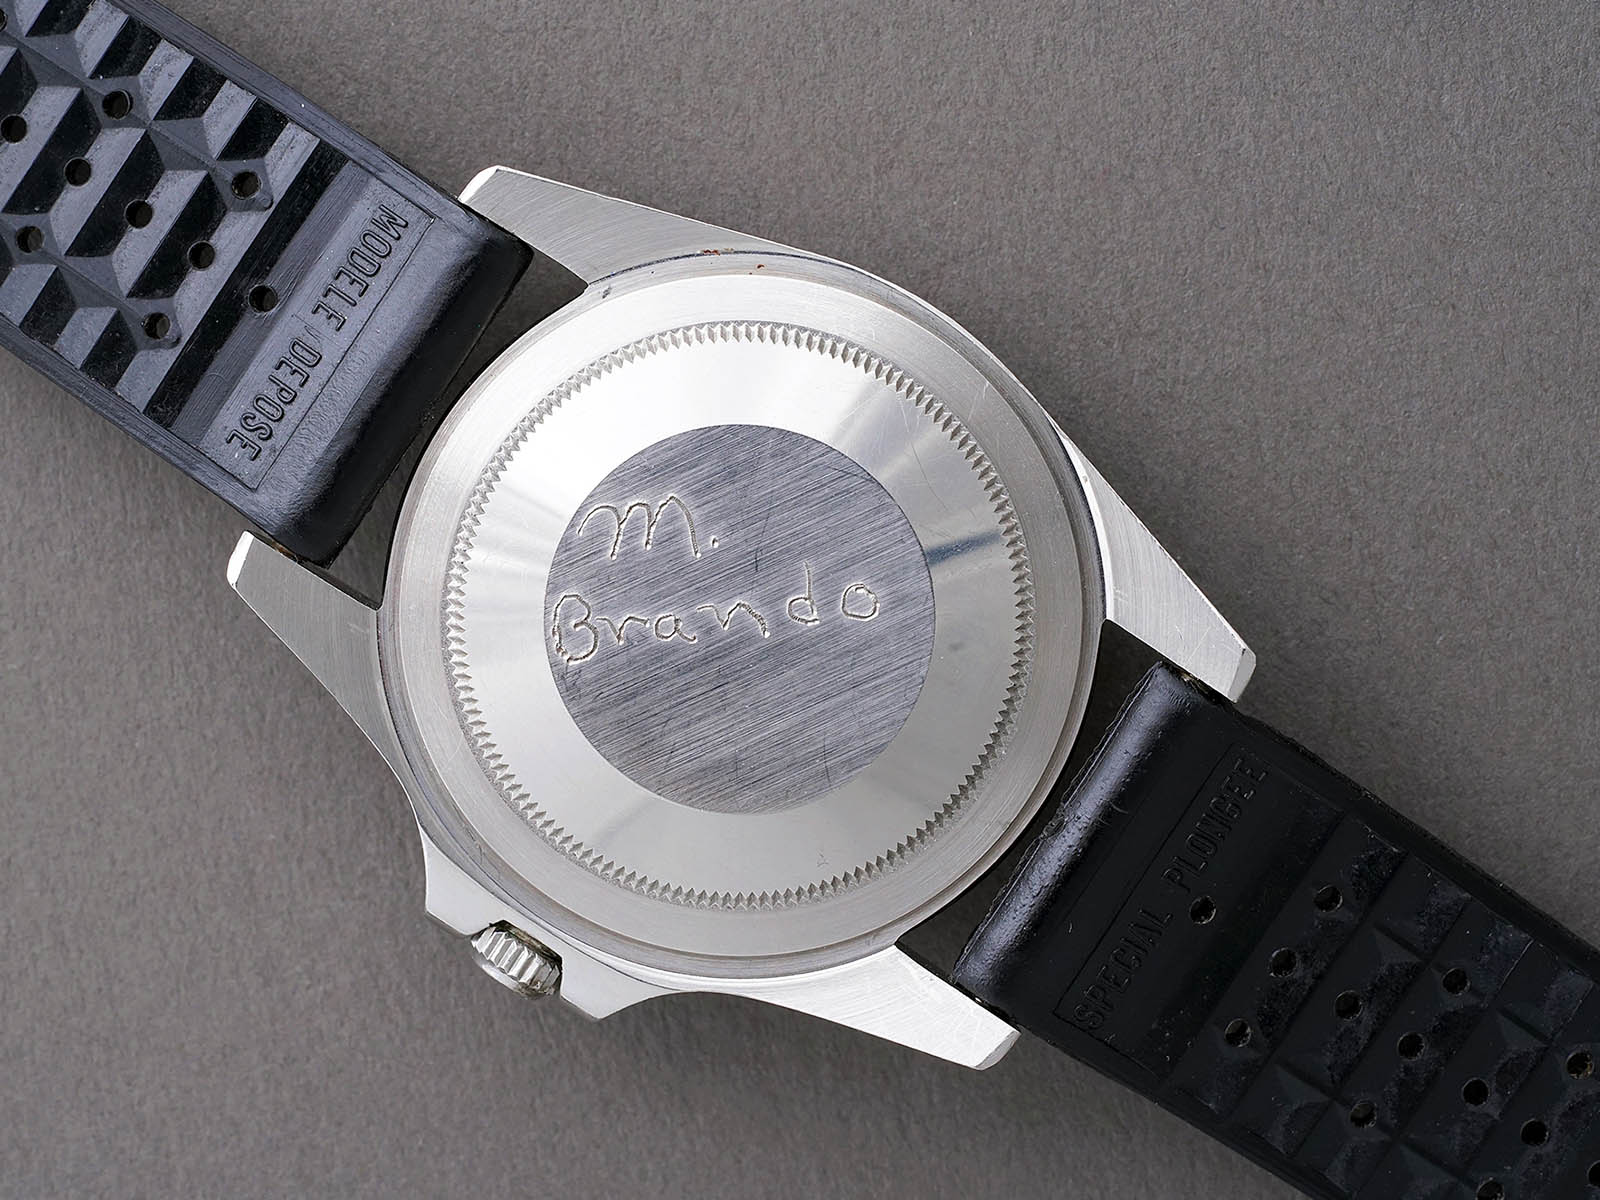 engraving-your-watch-s-case-back-6.jpg